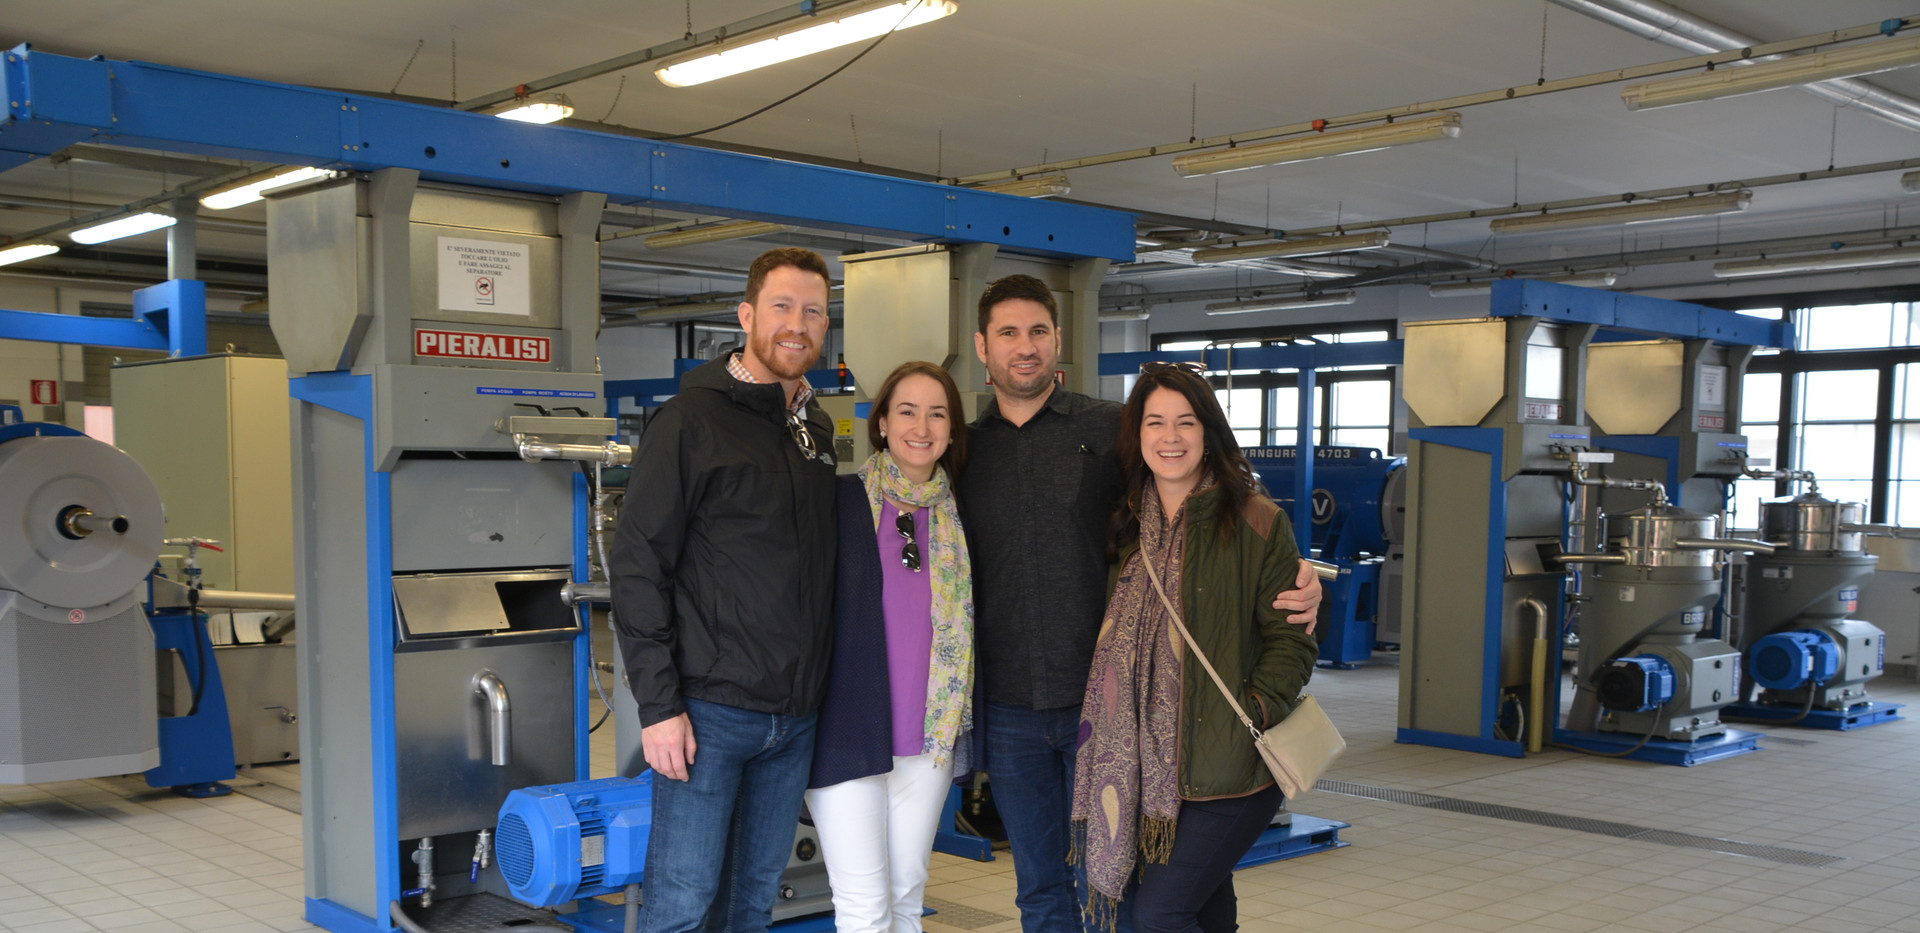 Half day - wine & olive oil tour - at the olive oil producer